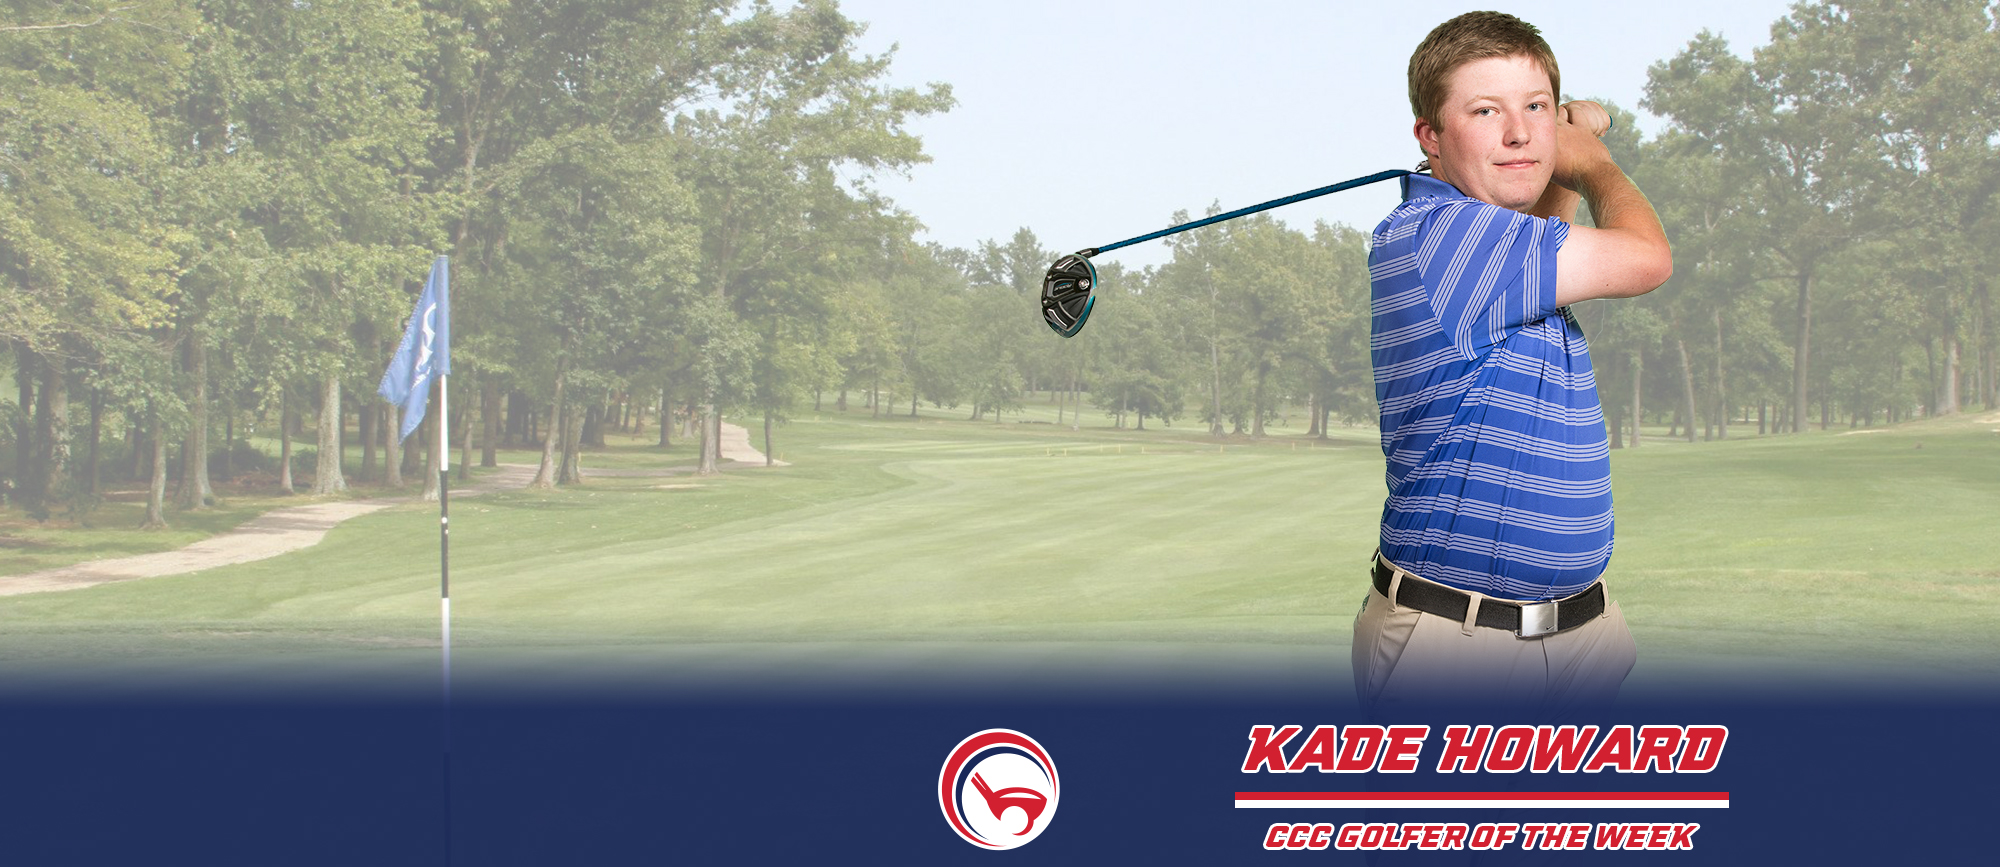 Kade Howard Earns First Career CCC Golfer of the Week Award